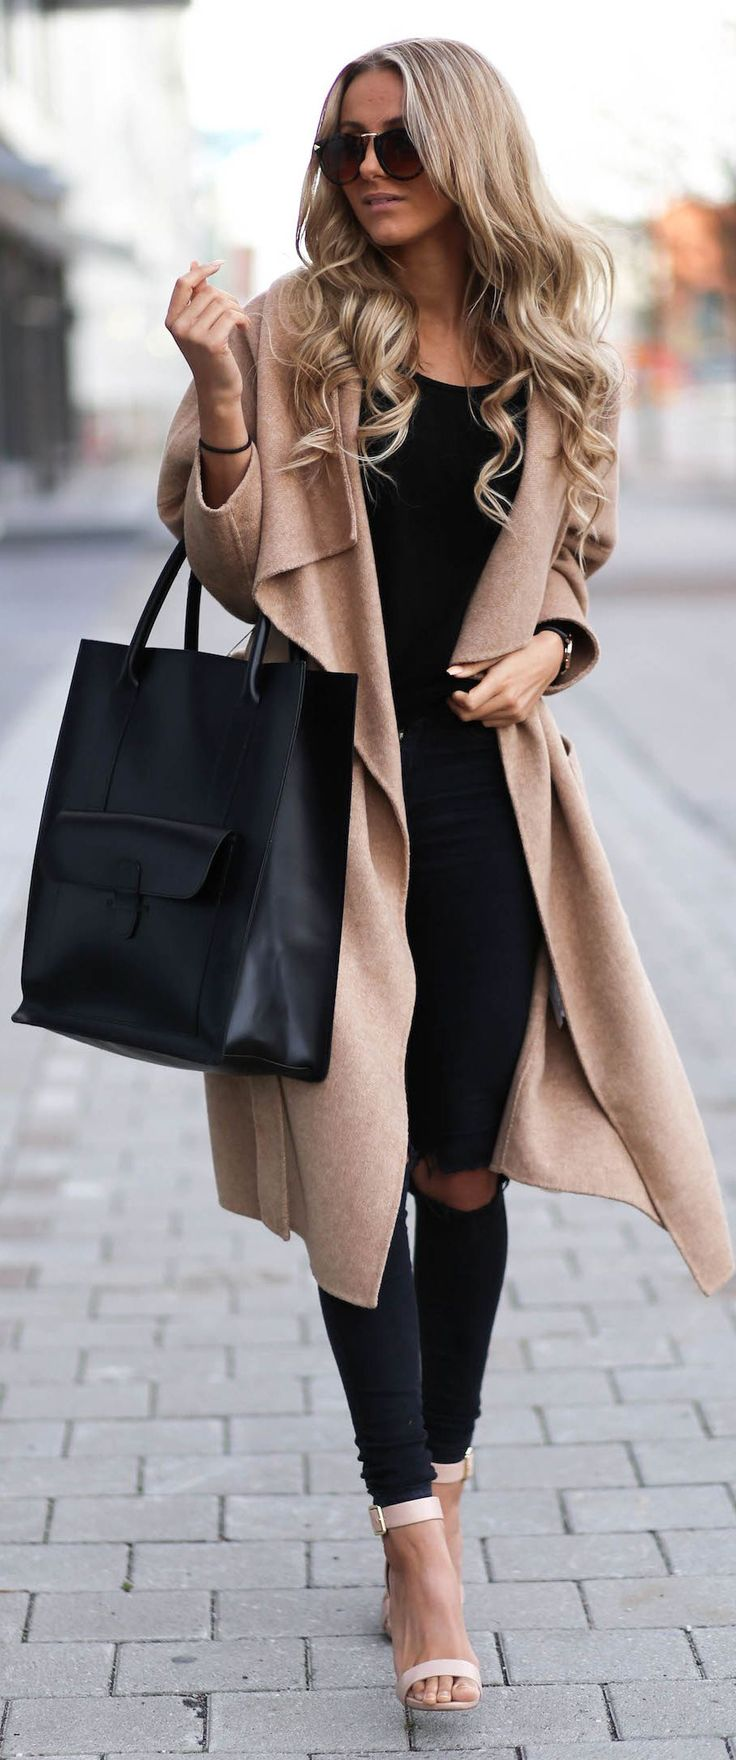 Street style black outfit and camel coat. #streetstyle #ParisComing Daily LookBook 11.28 cheapmkhandbags.jp.pn must have,cheap michael kors bags,fashion winter style, just cool.